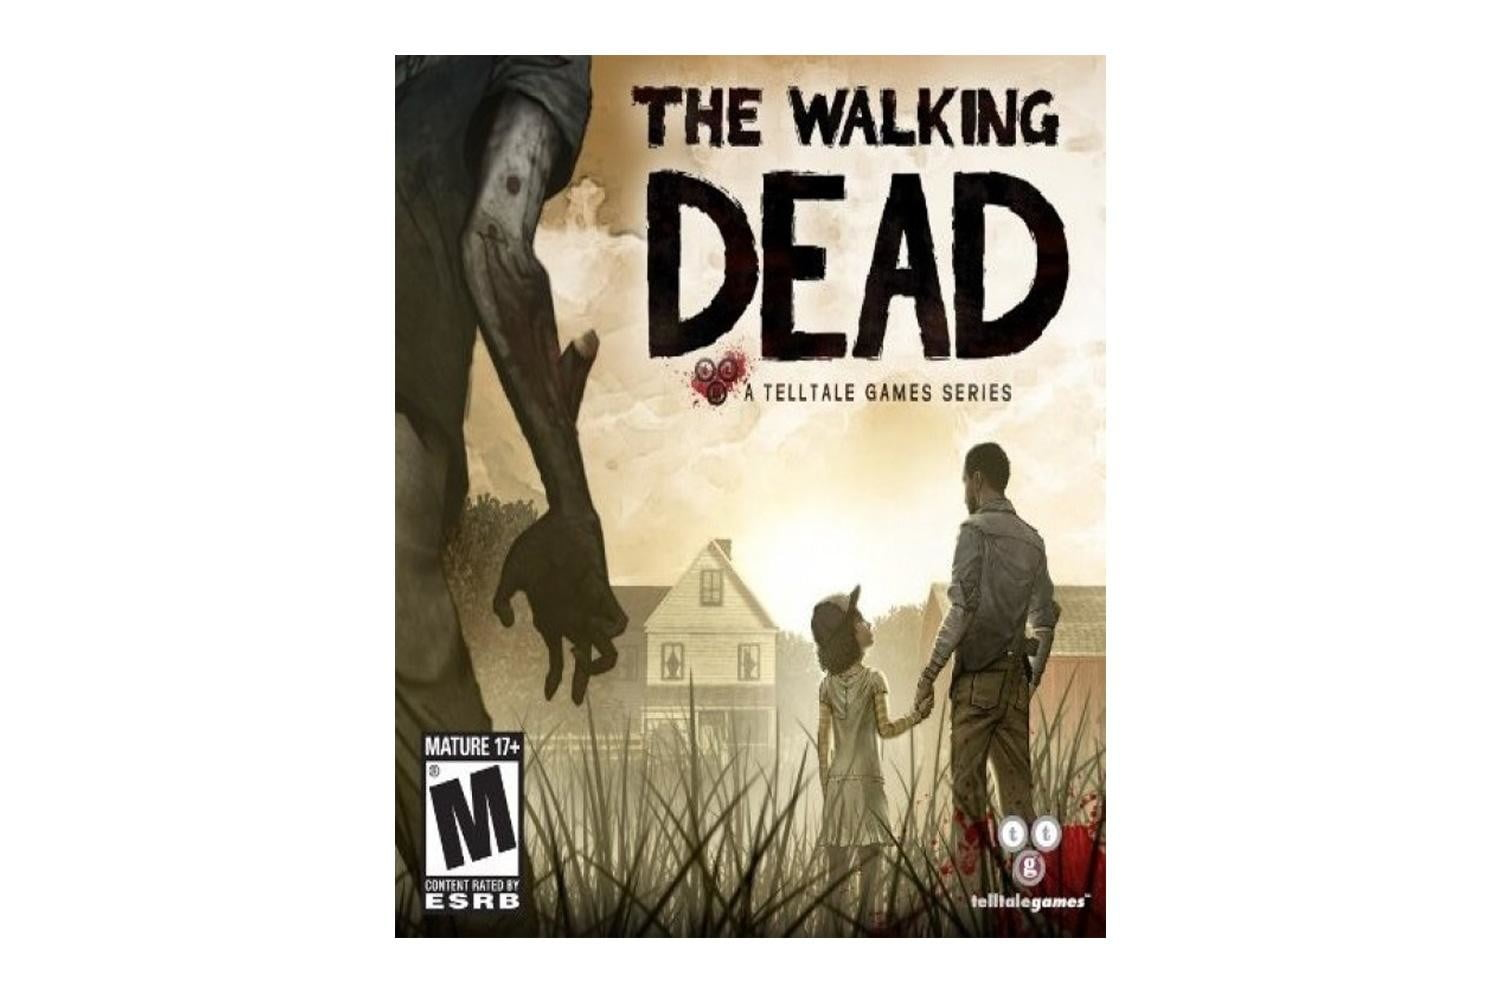 The-Walking-Dead-cover-art